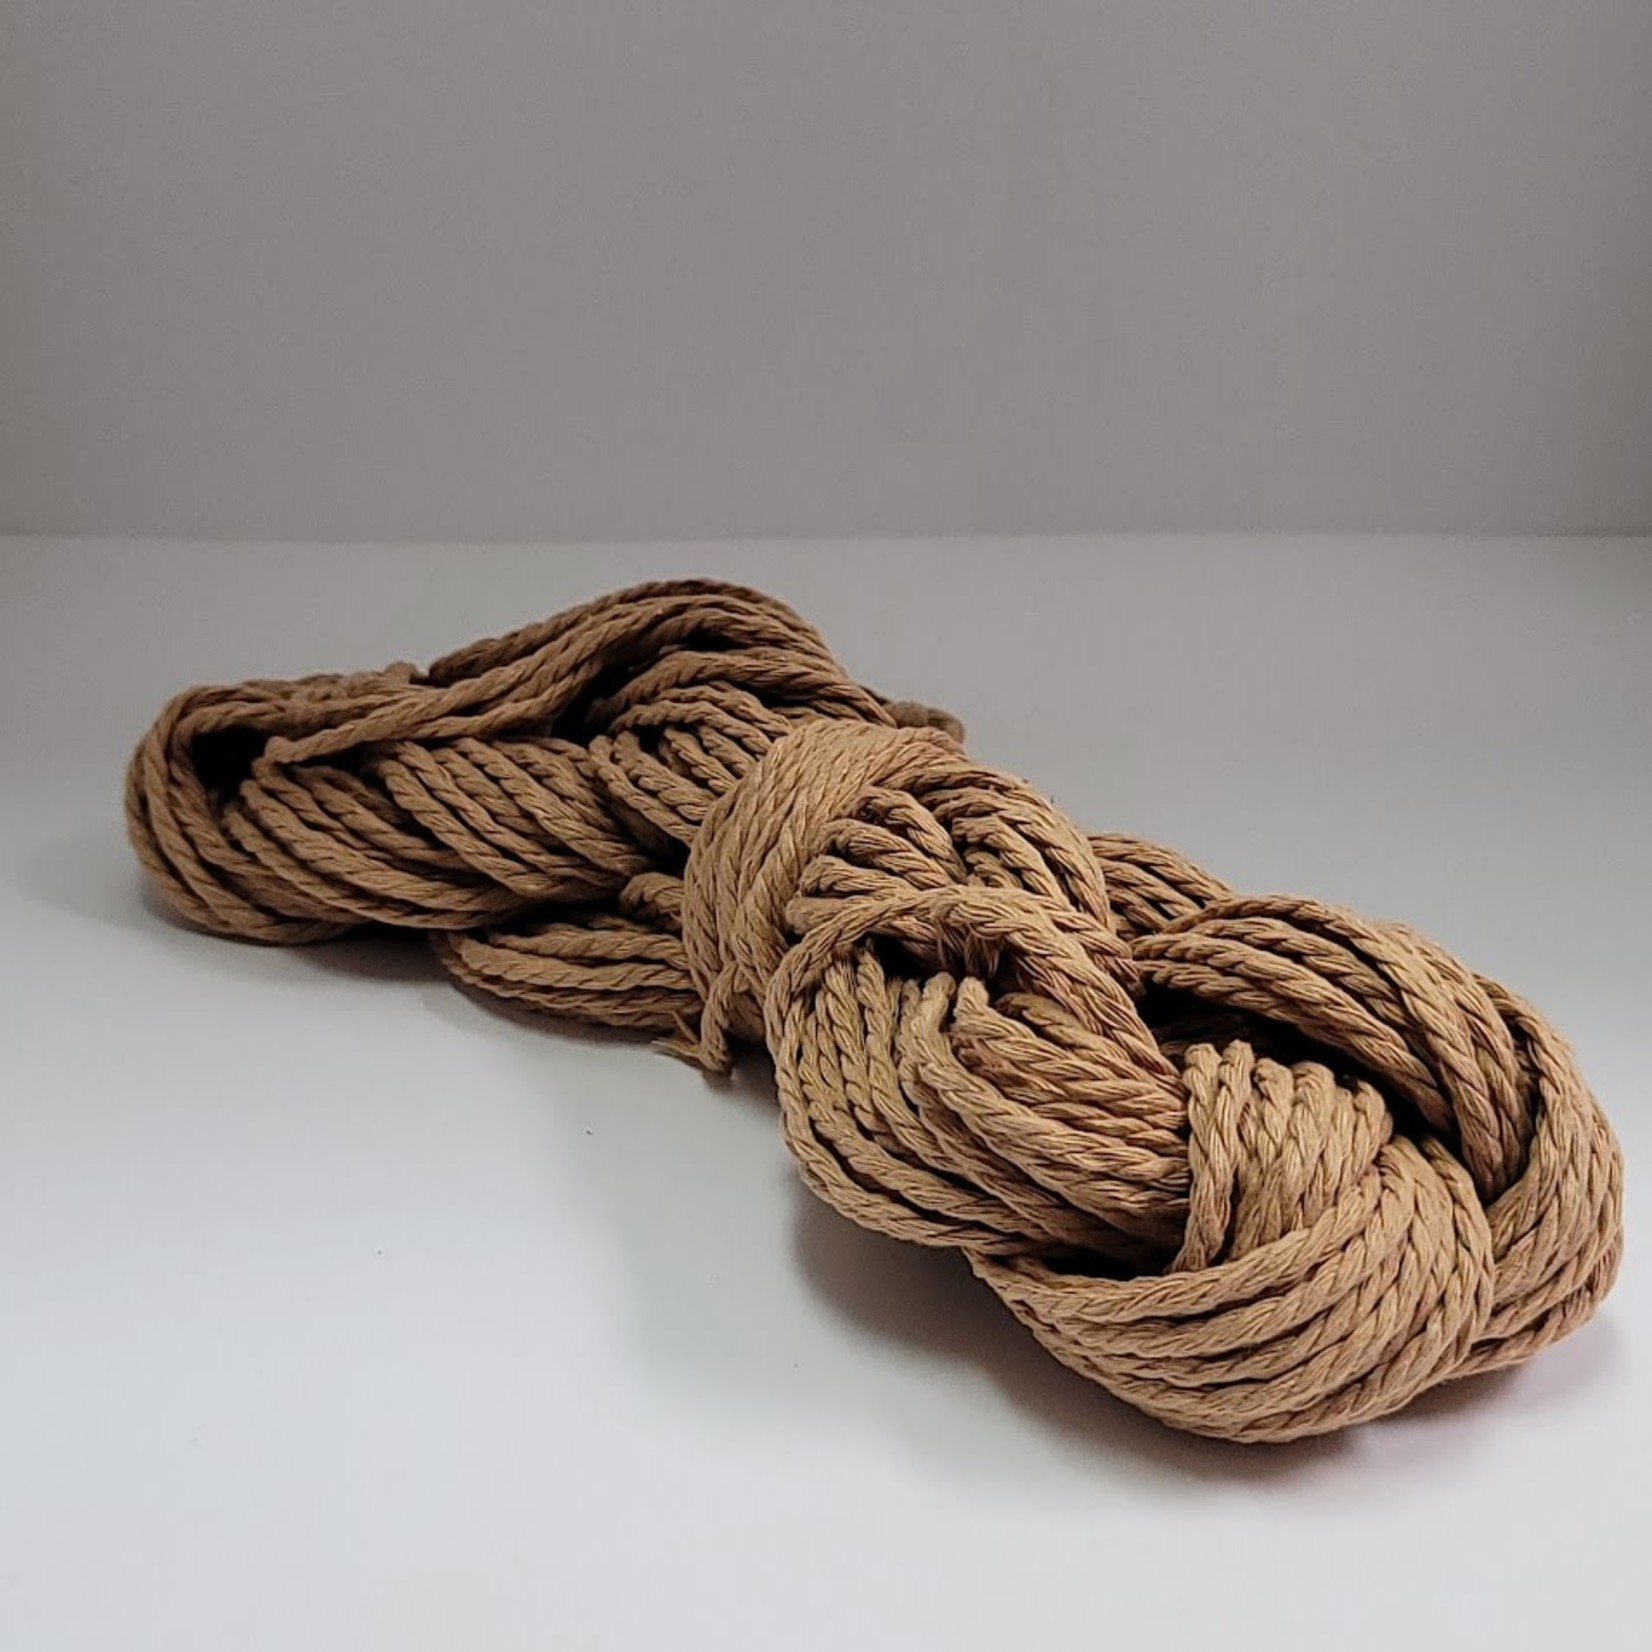 3mm Macrame 3 ply Cord - Approx 50m = 164ft -Rose Gold